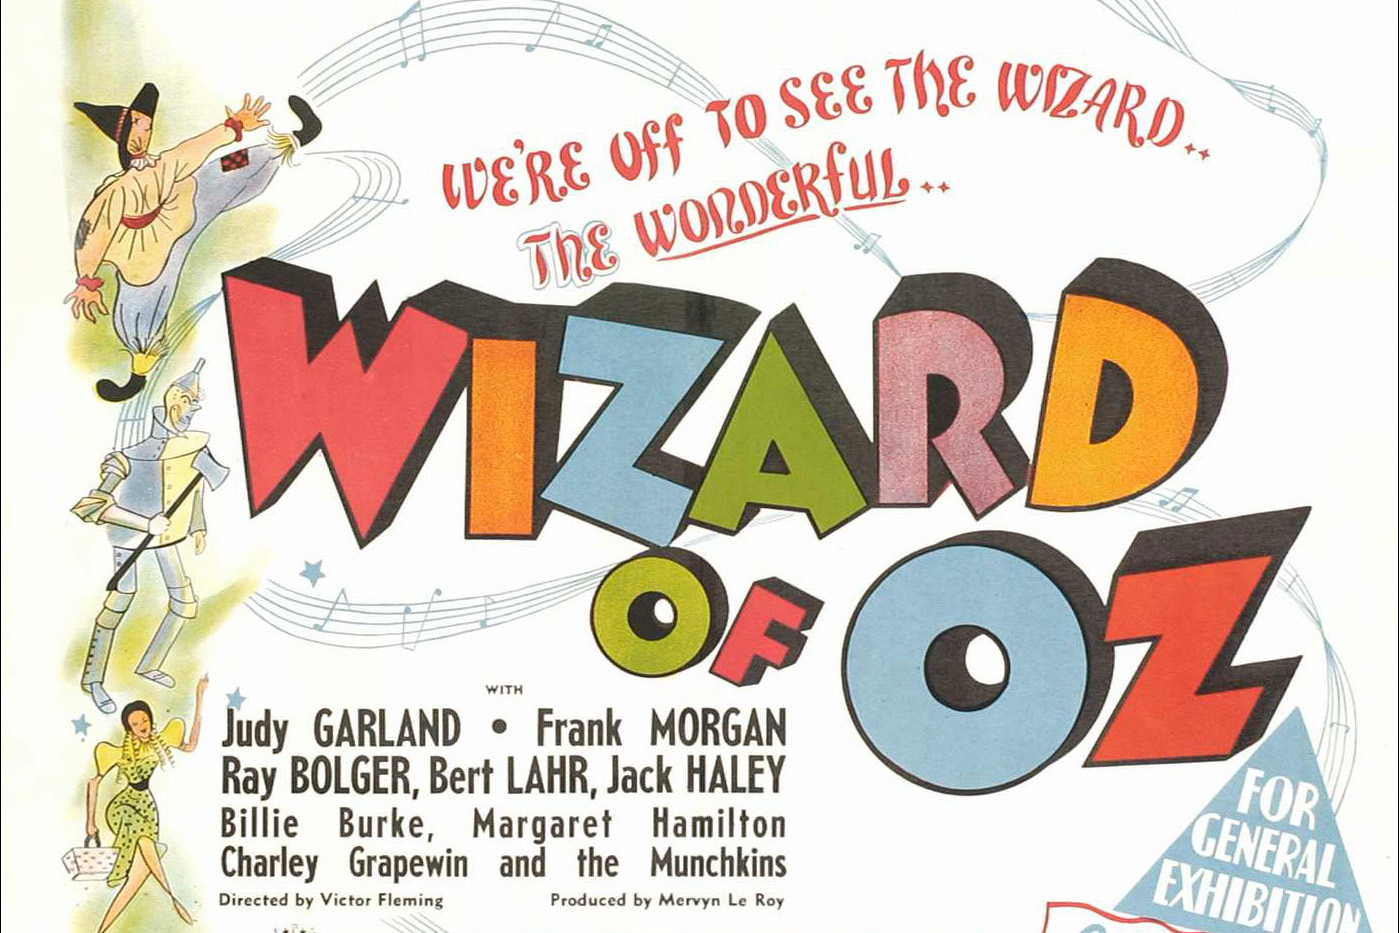 Wizard of Oz Film Poster